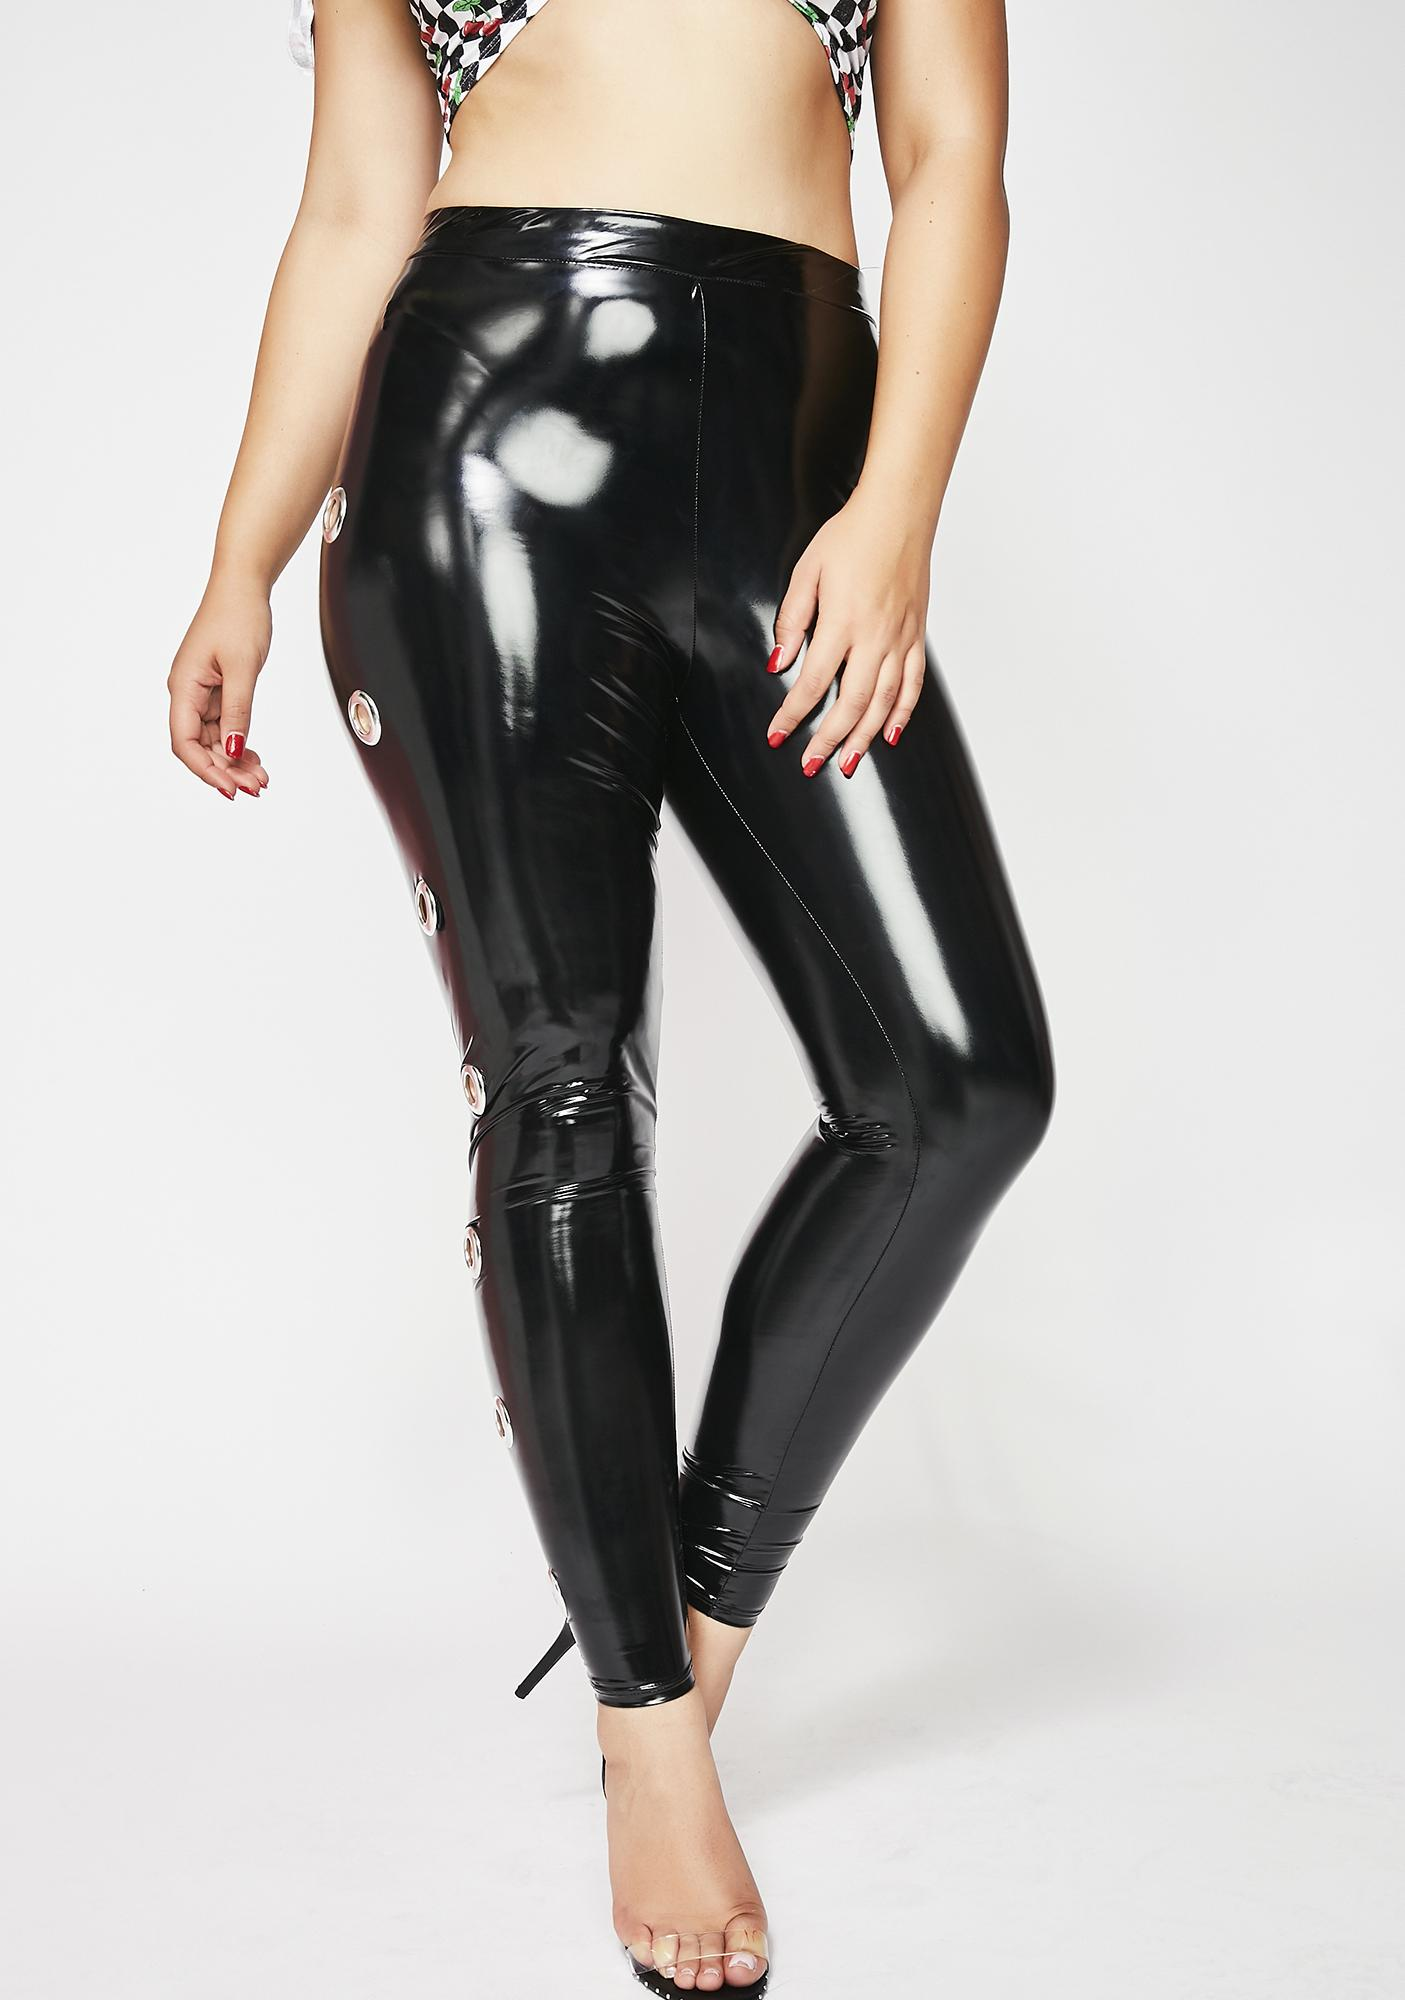 Better Than Ever Vinyl Leggings